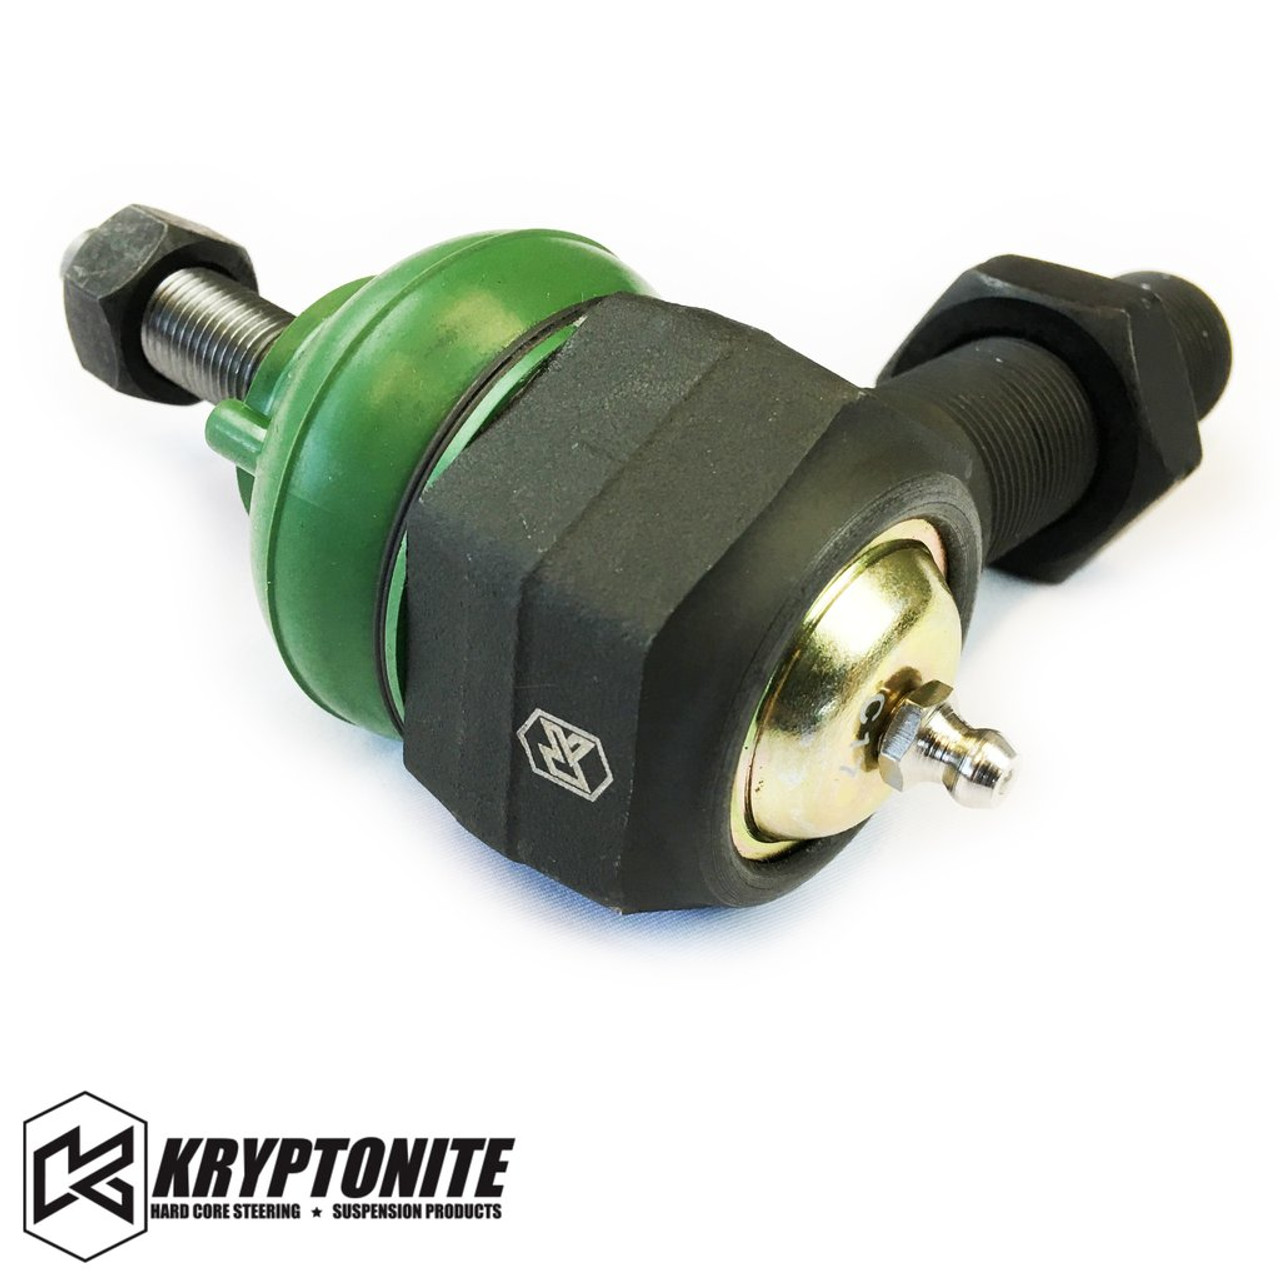 REPLACEMENT INNER TIE ROD FOR KRYPTONITE CENTER LINK 1999-2017